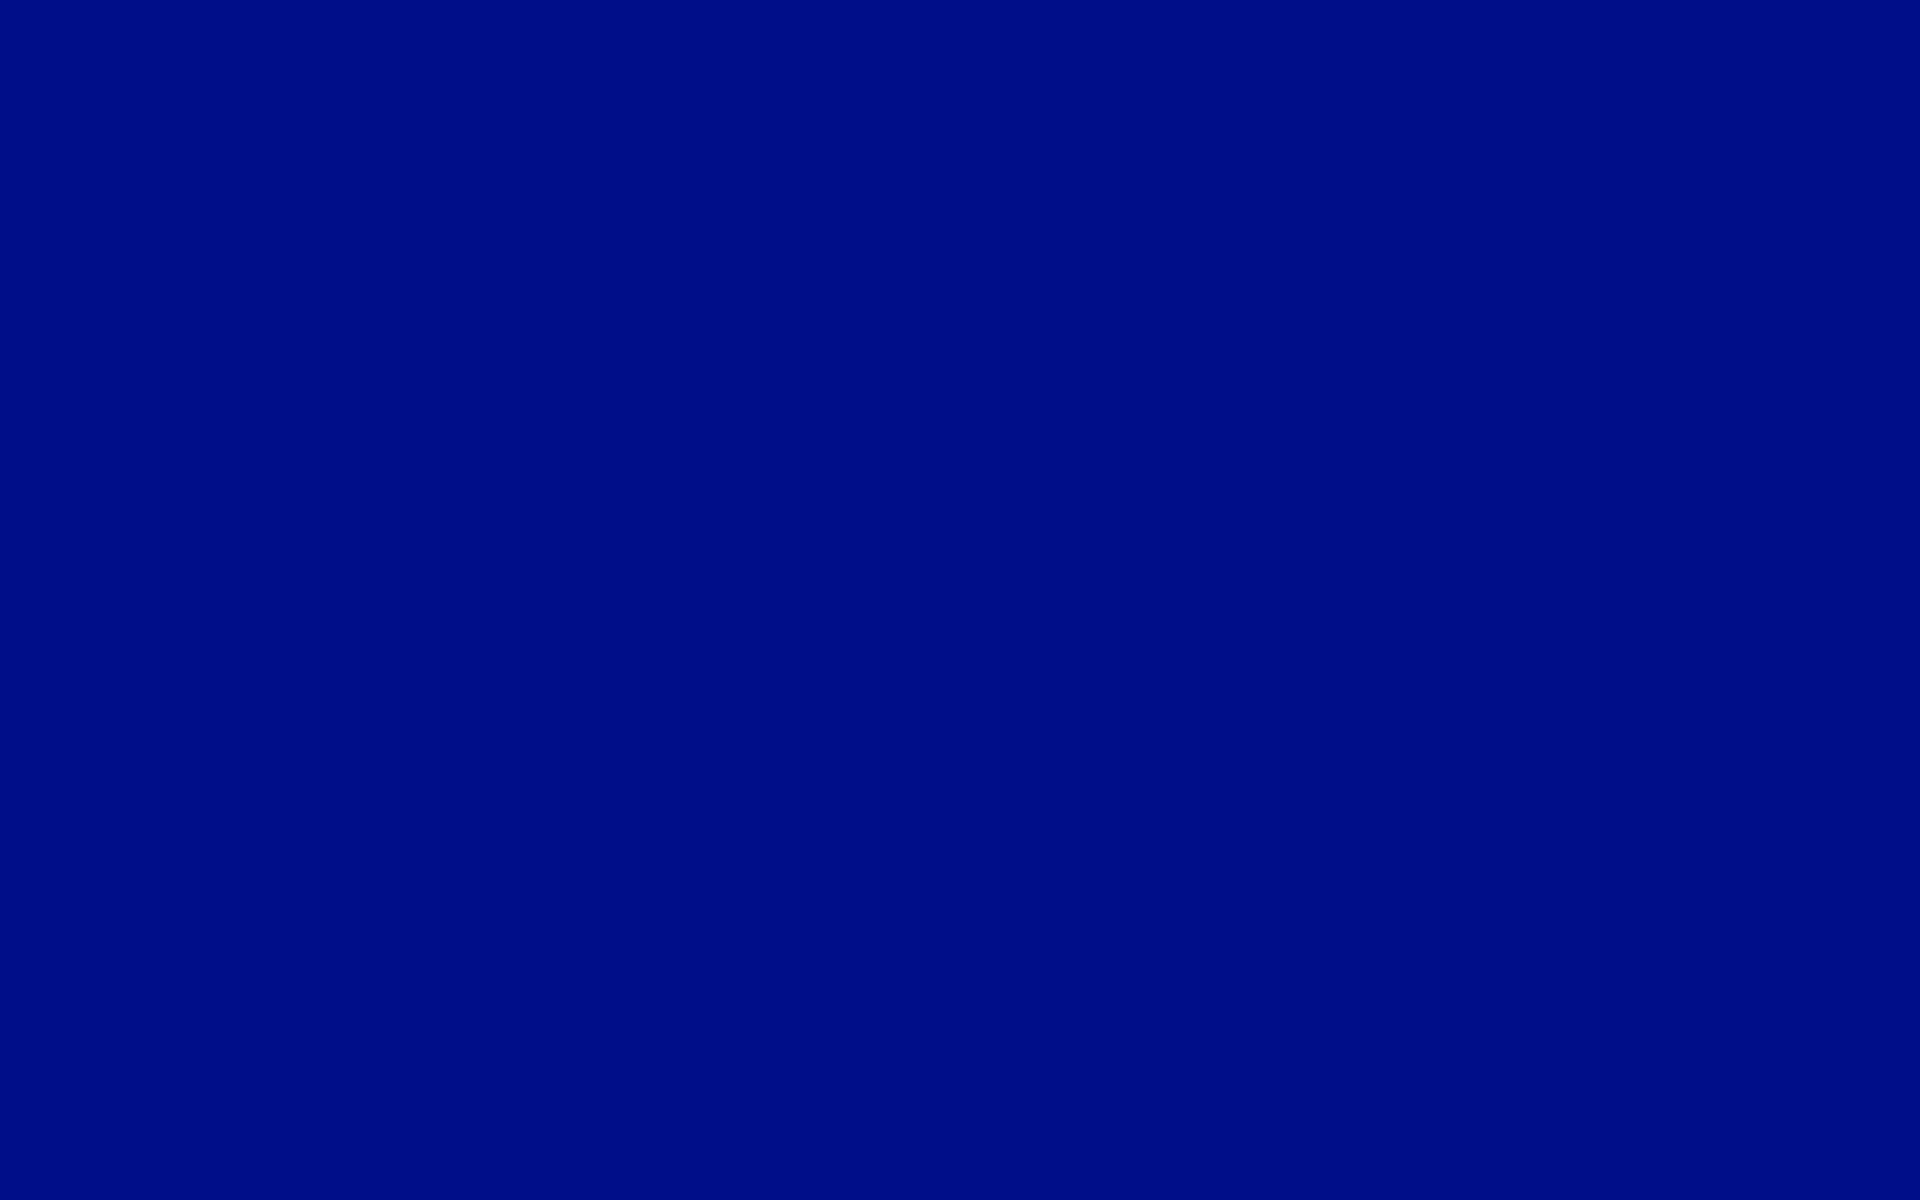 1920x1200 Phthalo Blue Solid Color Background